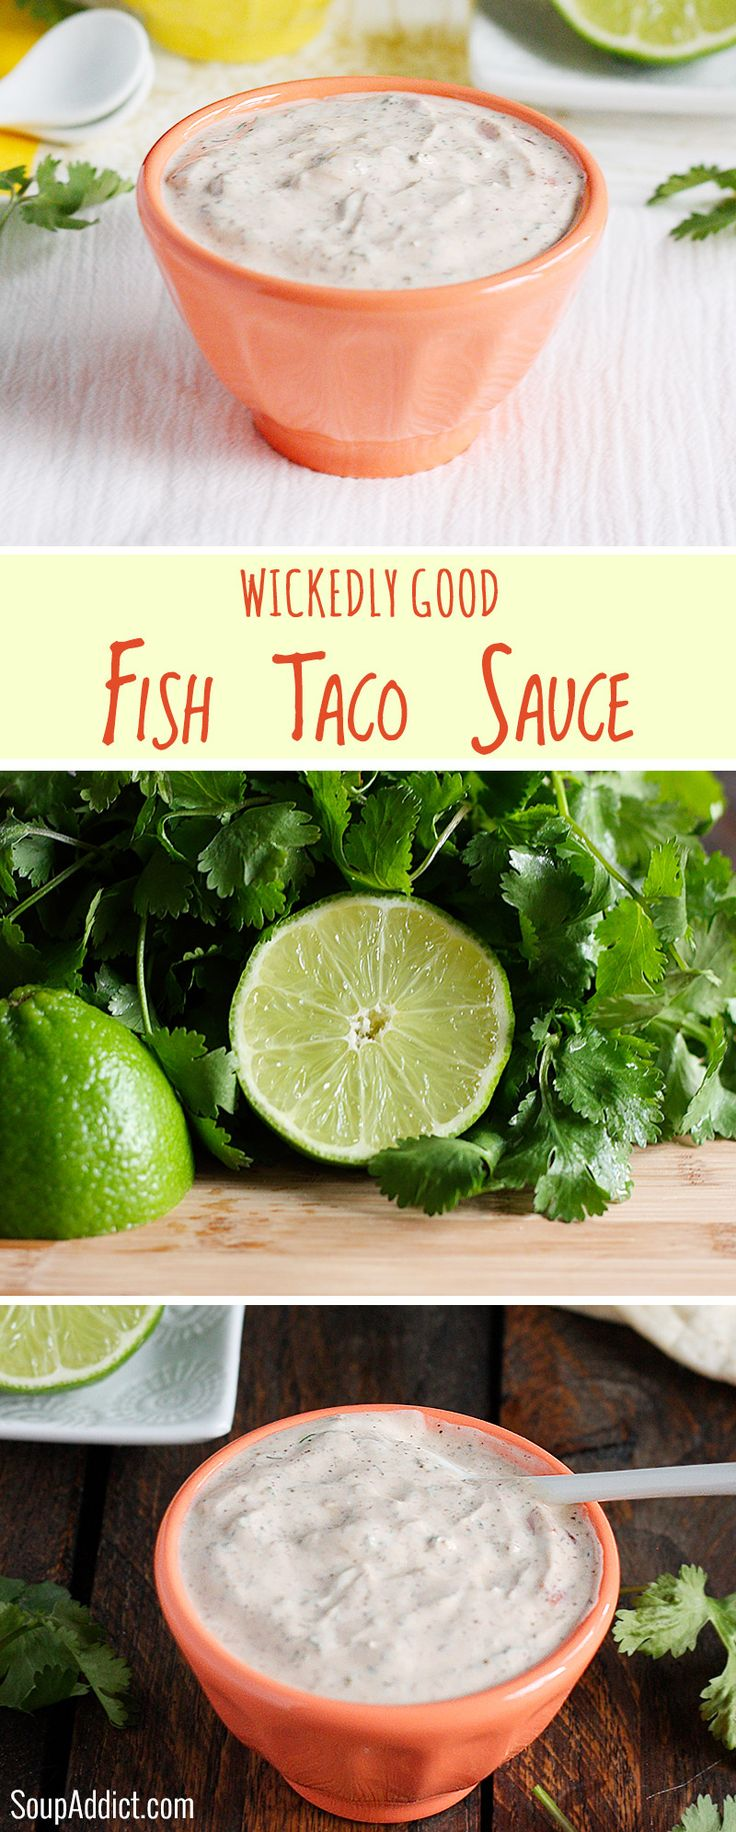 Wickedly Good Fish Taco Sauce - it's summer: fish taco bar time! And here's the best white sauce for your fish tacos. Perfectly spiced and make-ahead easy.